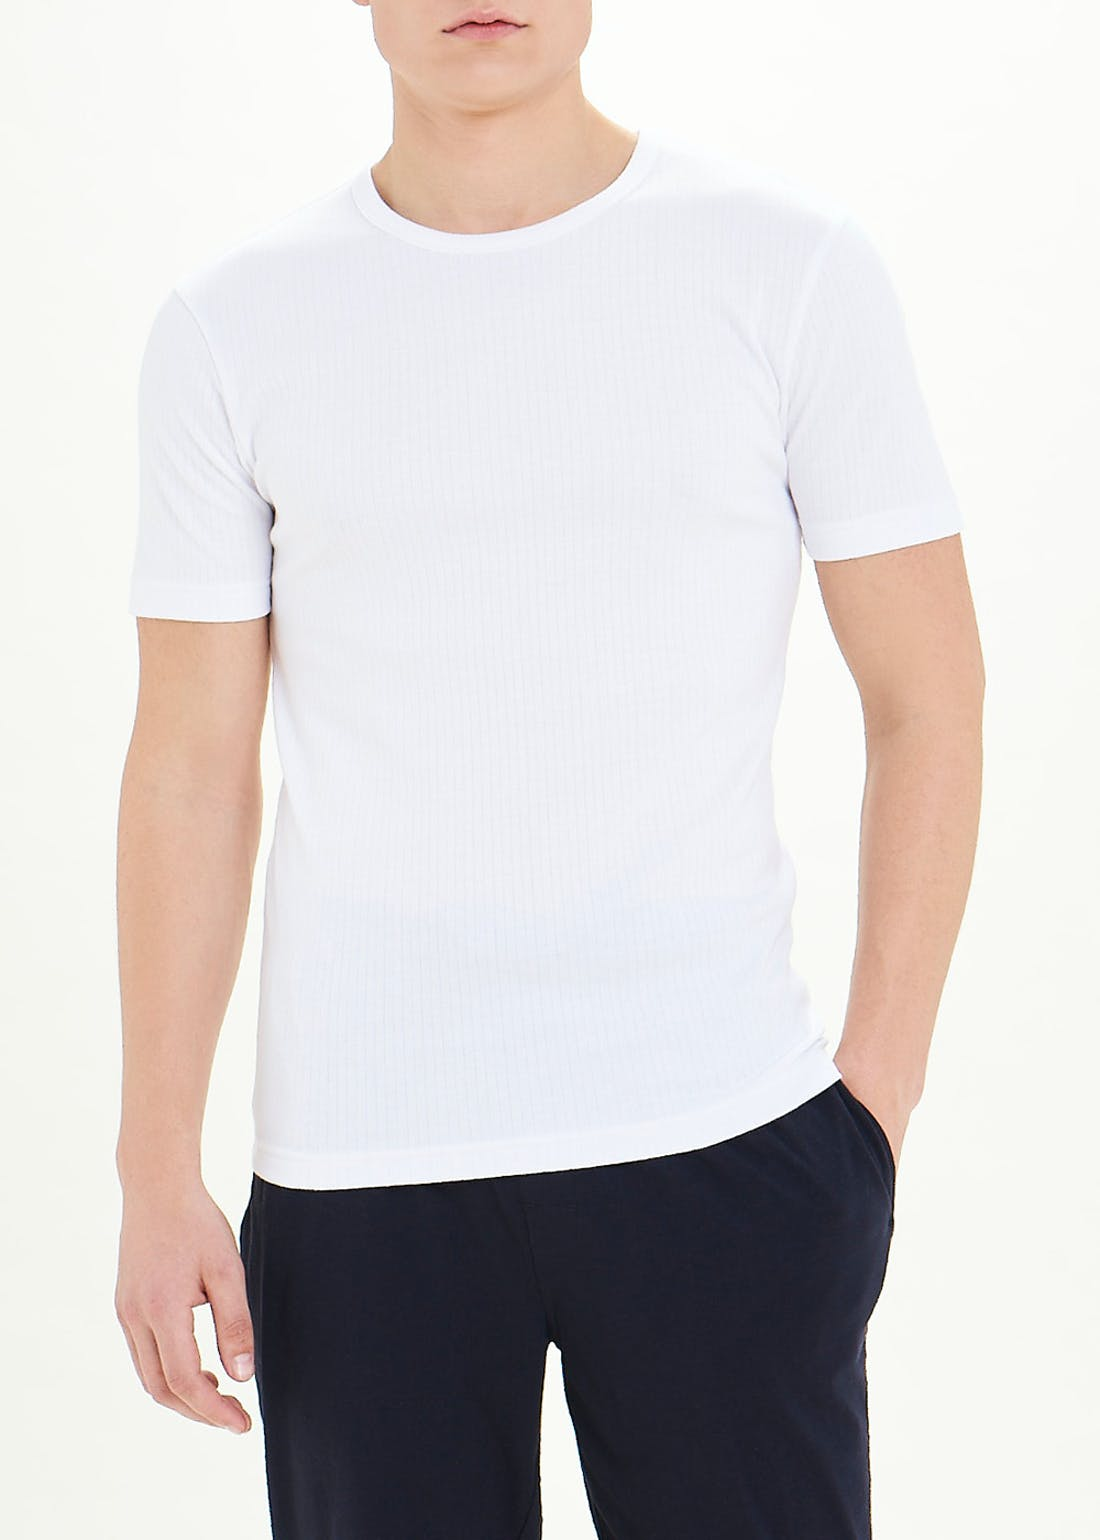 Short Sleeve Thermal T-Shirt